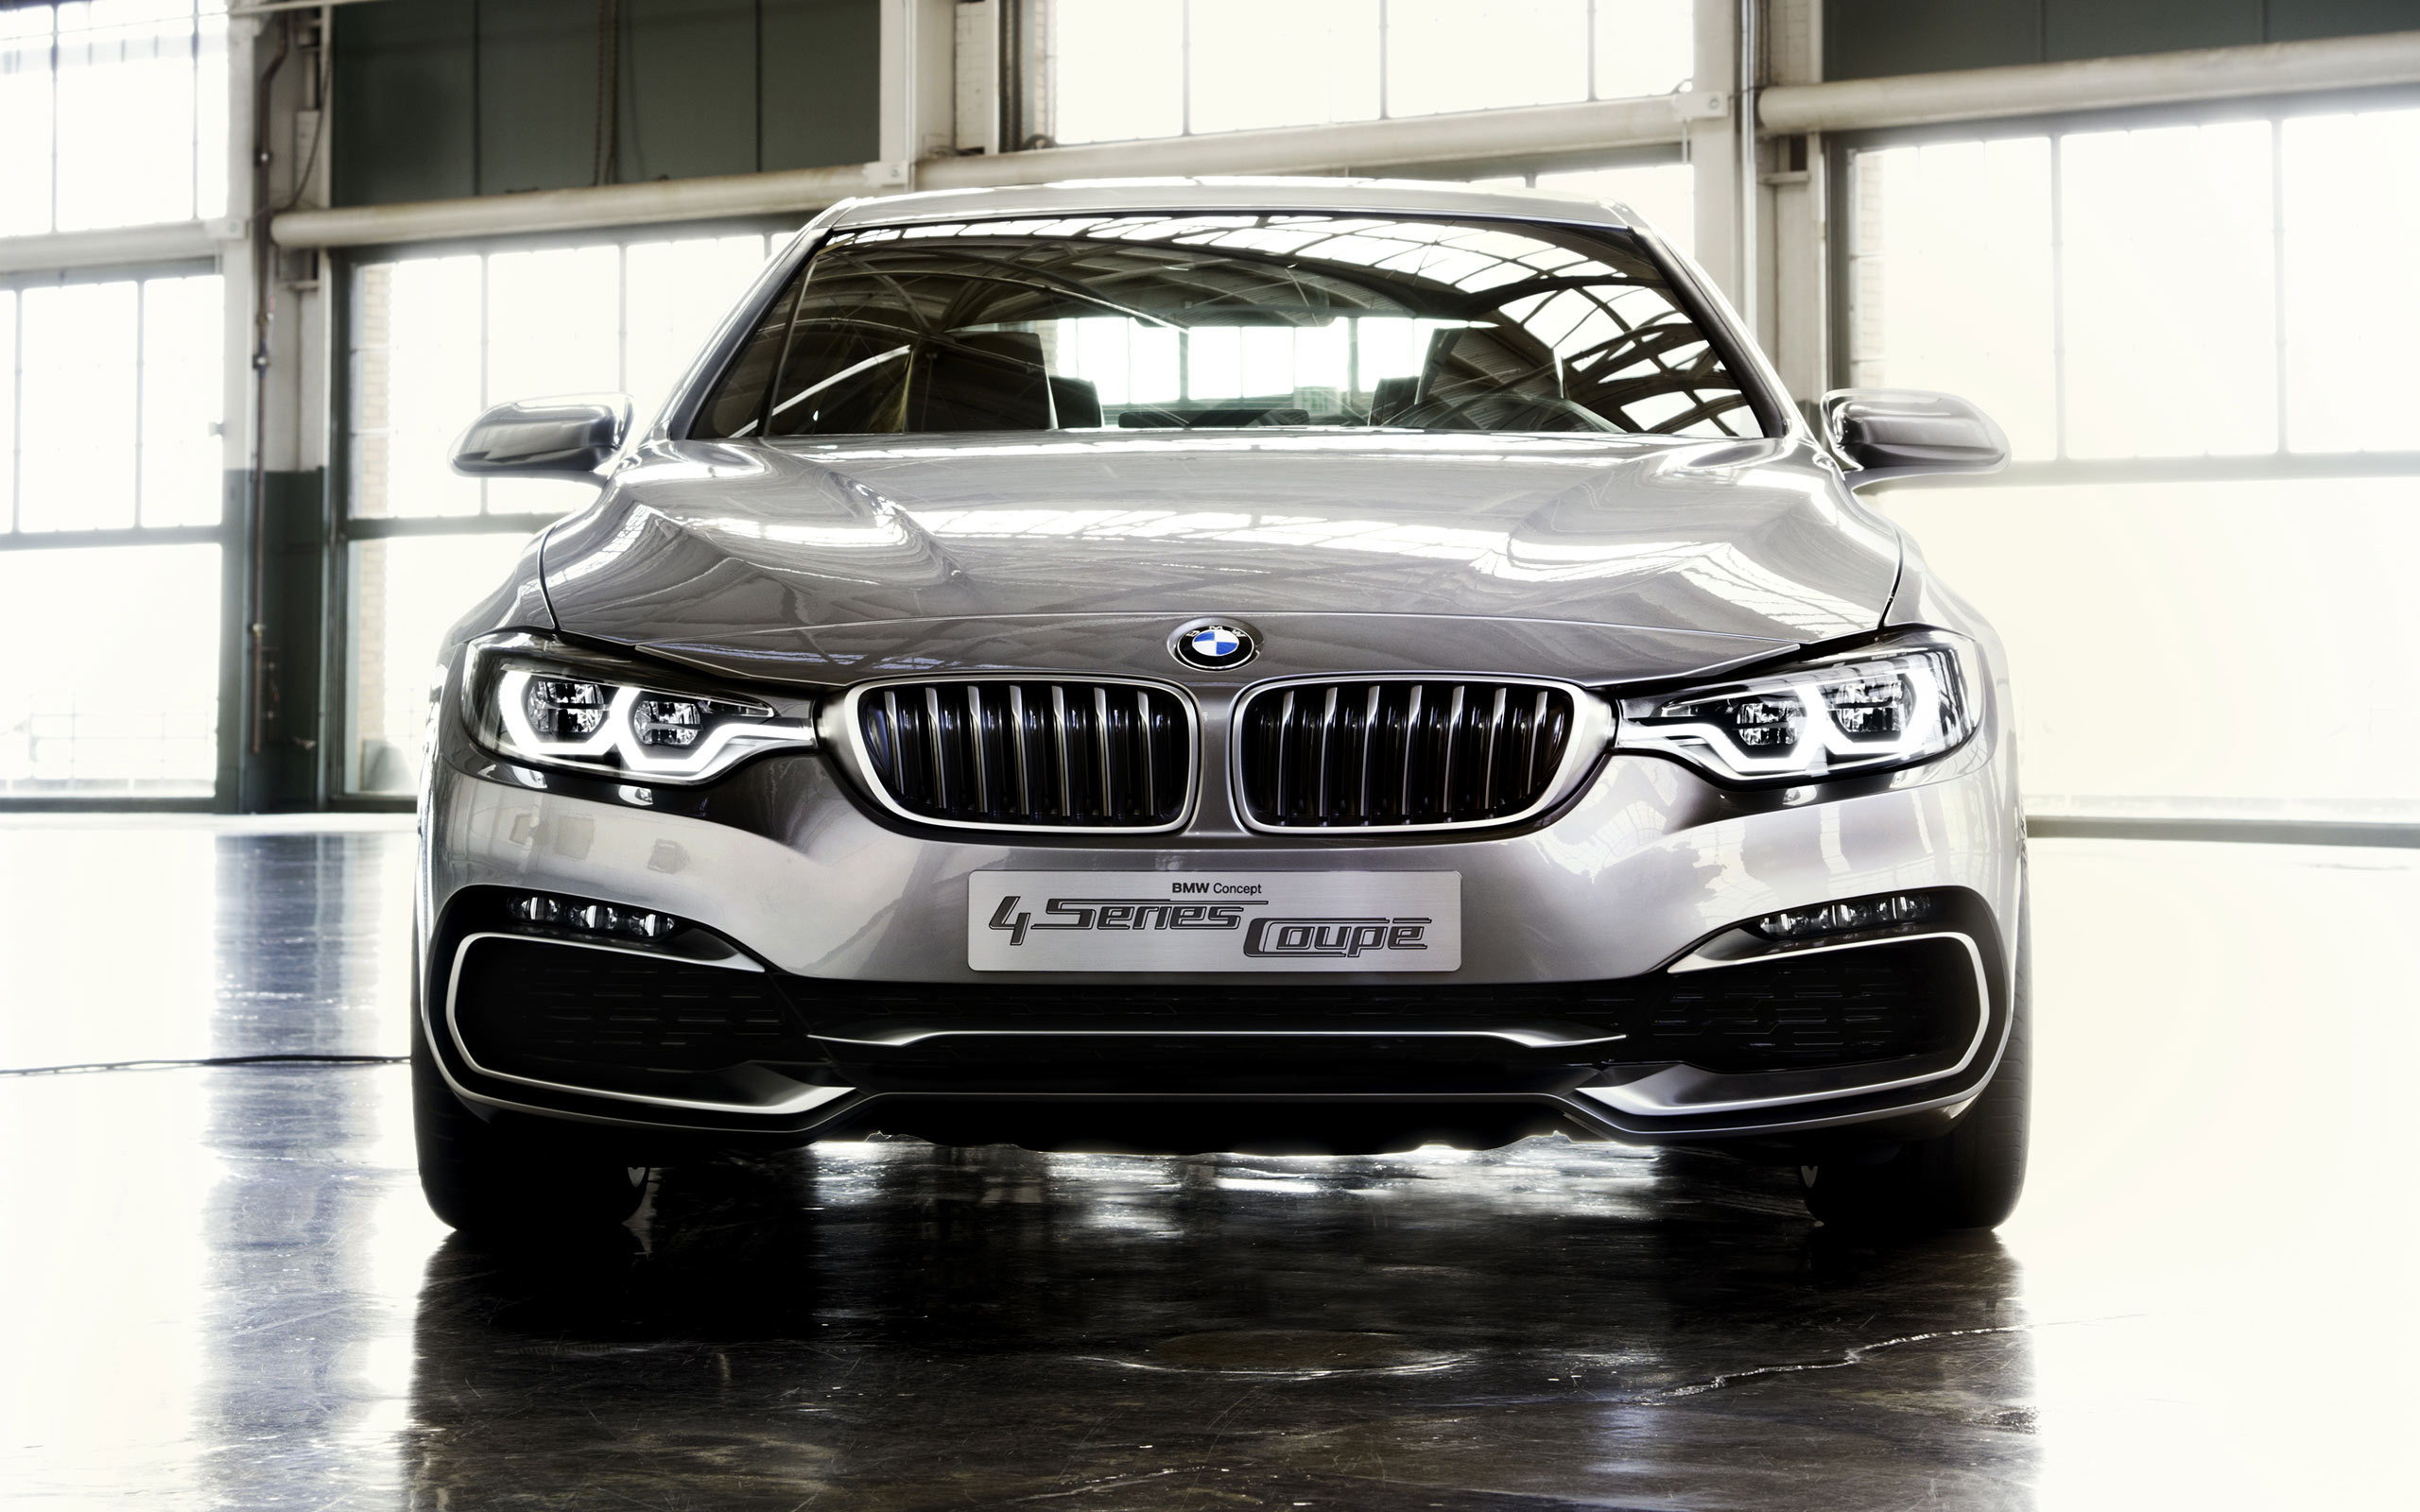 2013 BMW 4 Series Coupe Concept 2 Wallpaper | HD Car Wallpapers | ID ...